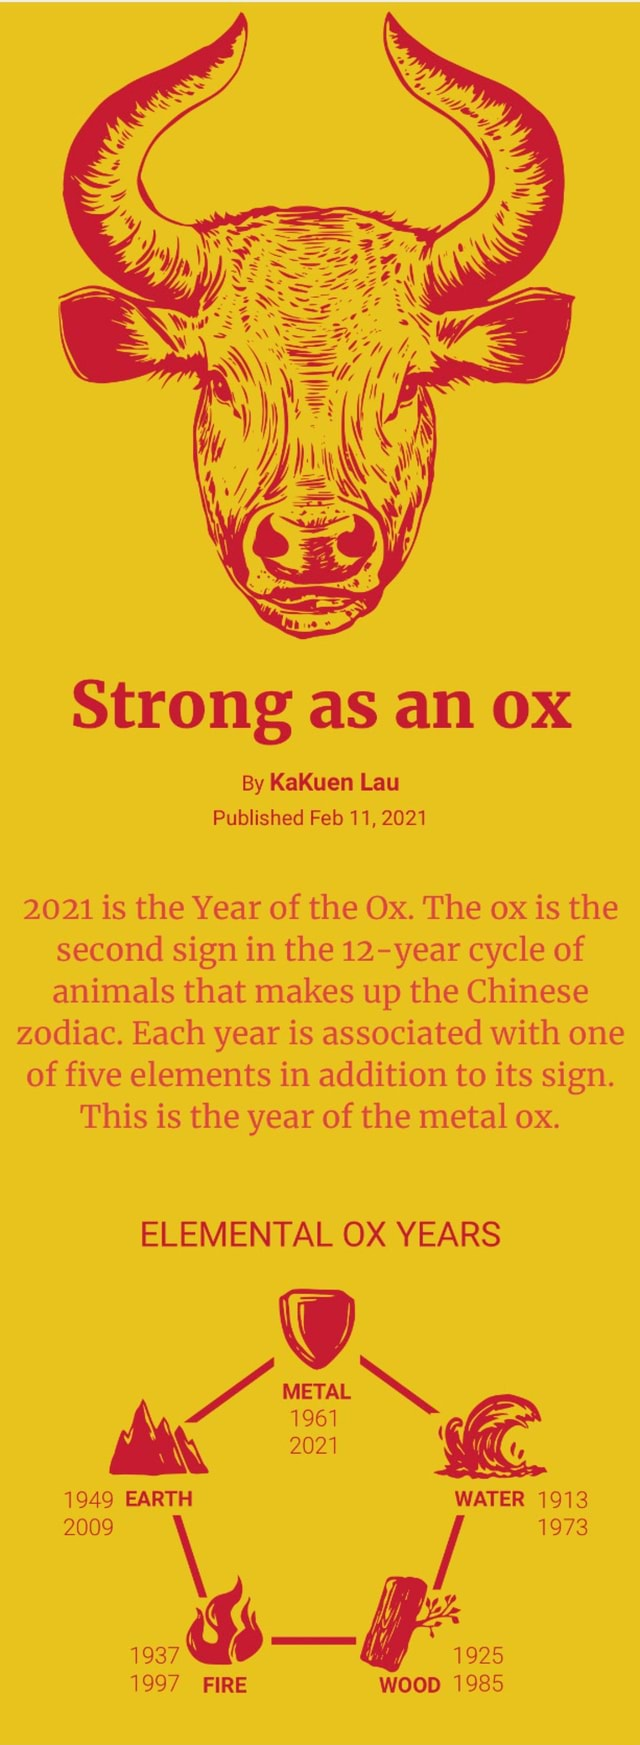 Strong as an OX By KaKuen Lau Published Feb 11, 2021 2021 is the Year of the Ox. The ox is the second sign in the year cycle of animals that makes up the Chinese zodiac. Each year is associated with one of five elements in addition to its sign. This is the year of the metal ox. ELEMENTAL OX YEARS METAL 2021 1949 EARTH WATER 1913 2009   1973 1937 1925 1997 FIRE WOOD 1985 memes